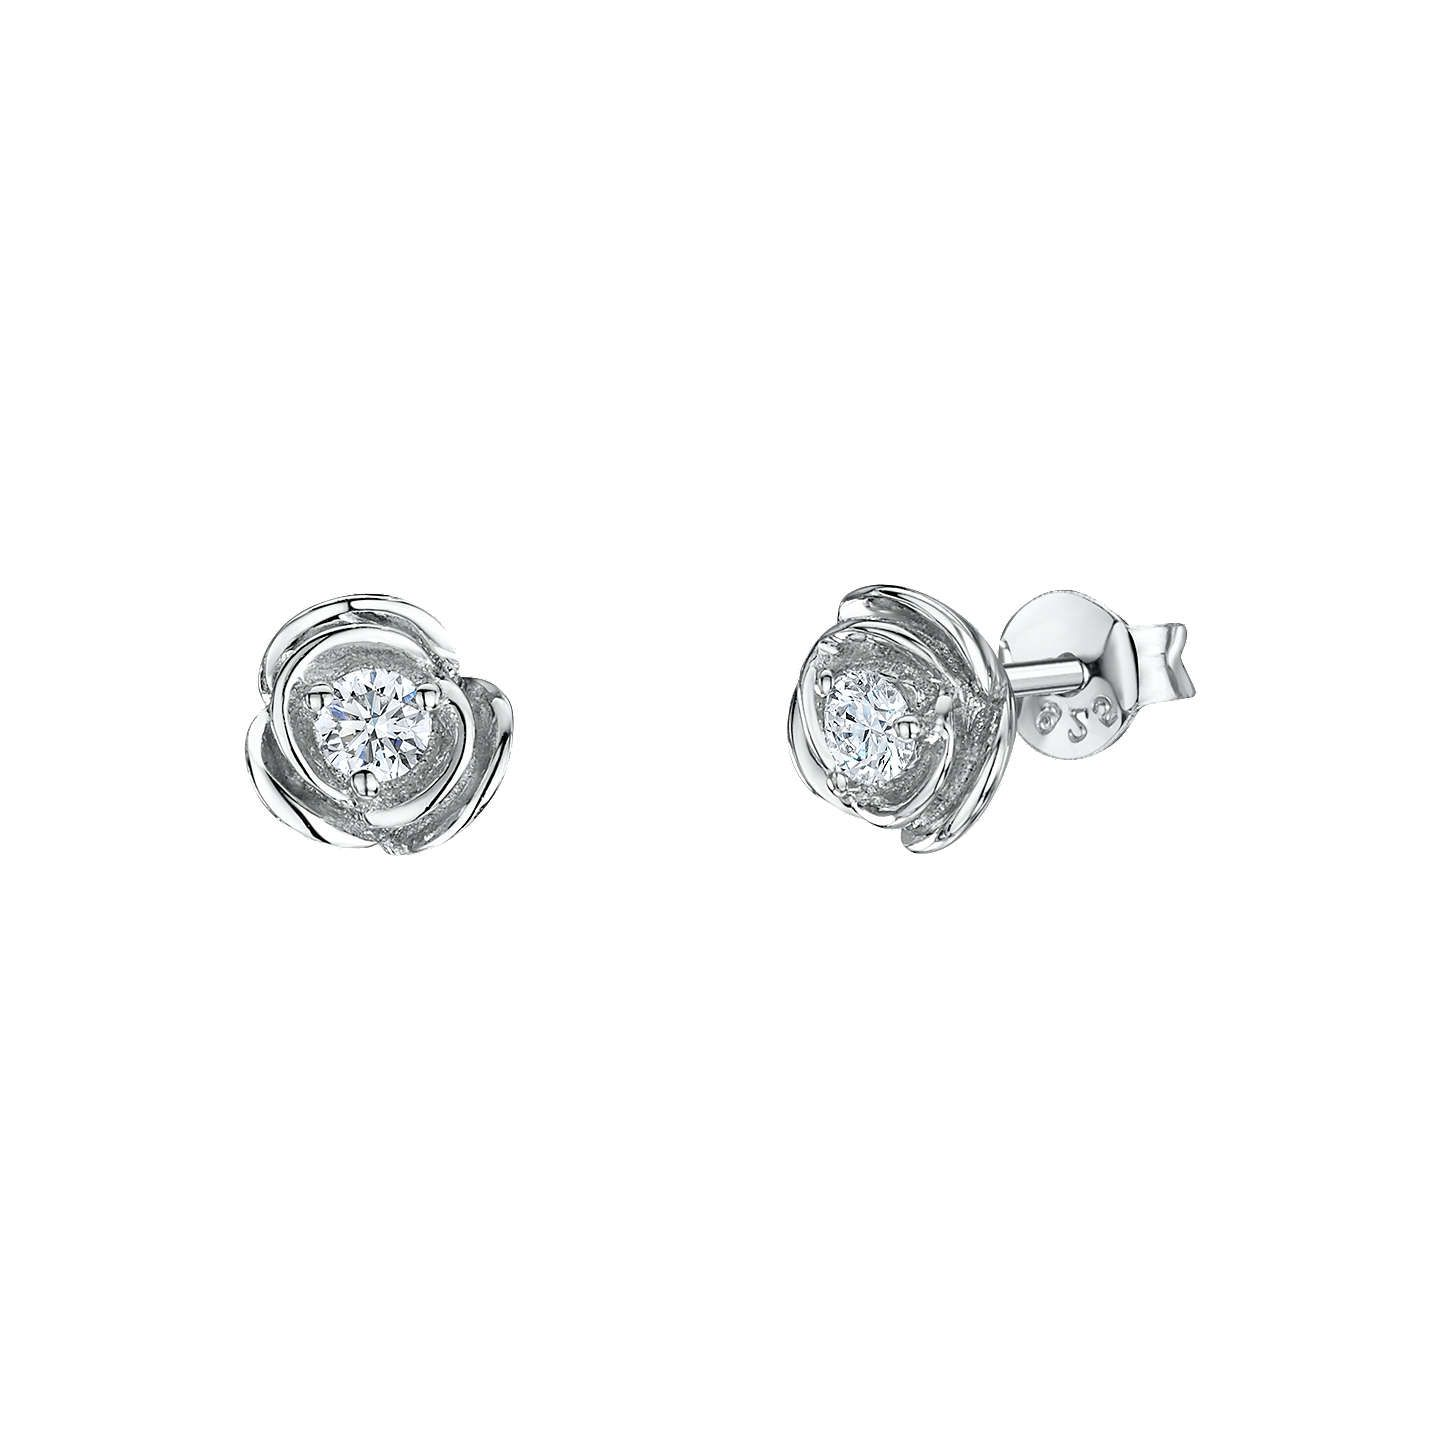 Jools By Jenny Brown Cubic Zirconia Round Stud Earrings Silver Online At Johnlewis